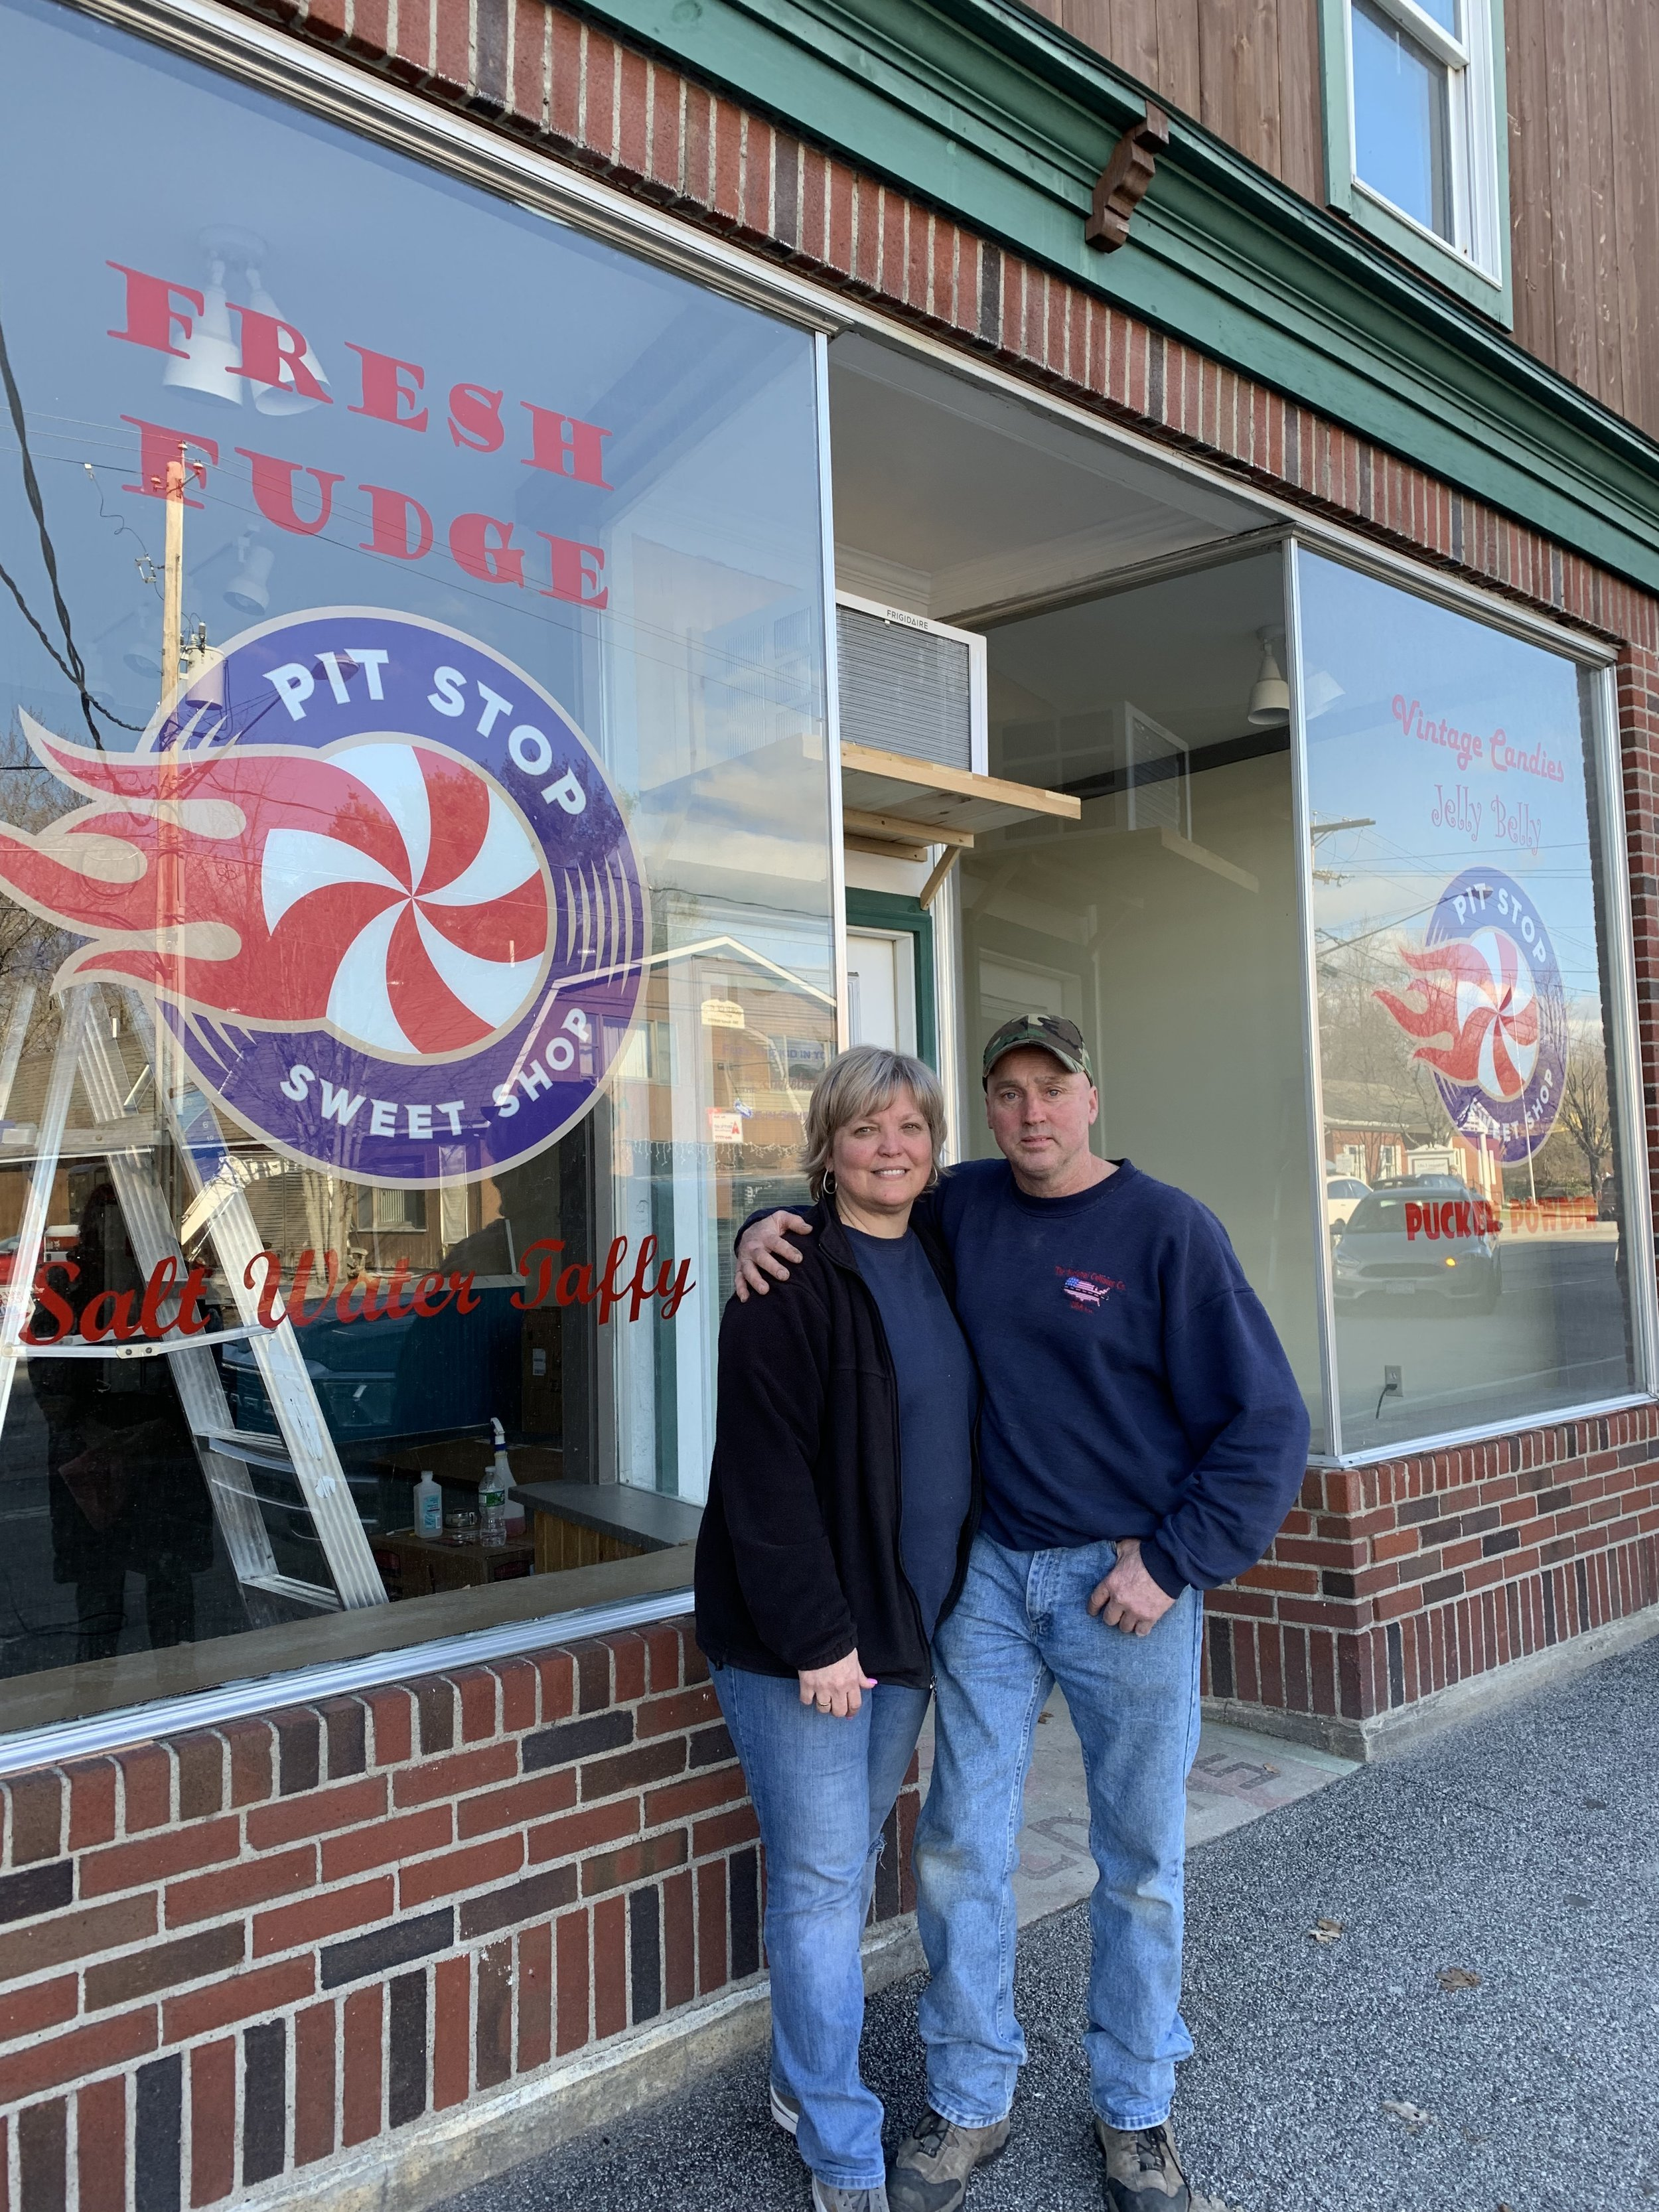 Laura and Buddy Lane are the entrepreneurs behind the new Pit Stop Sweet Shop.